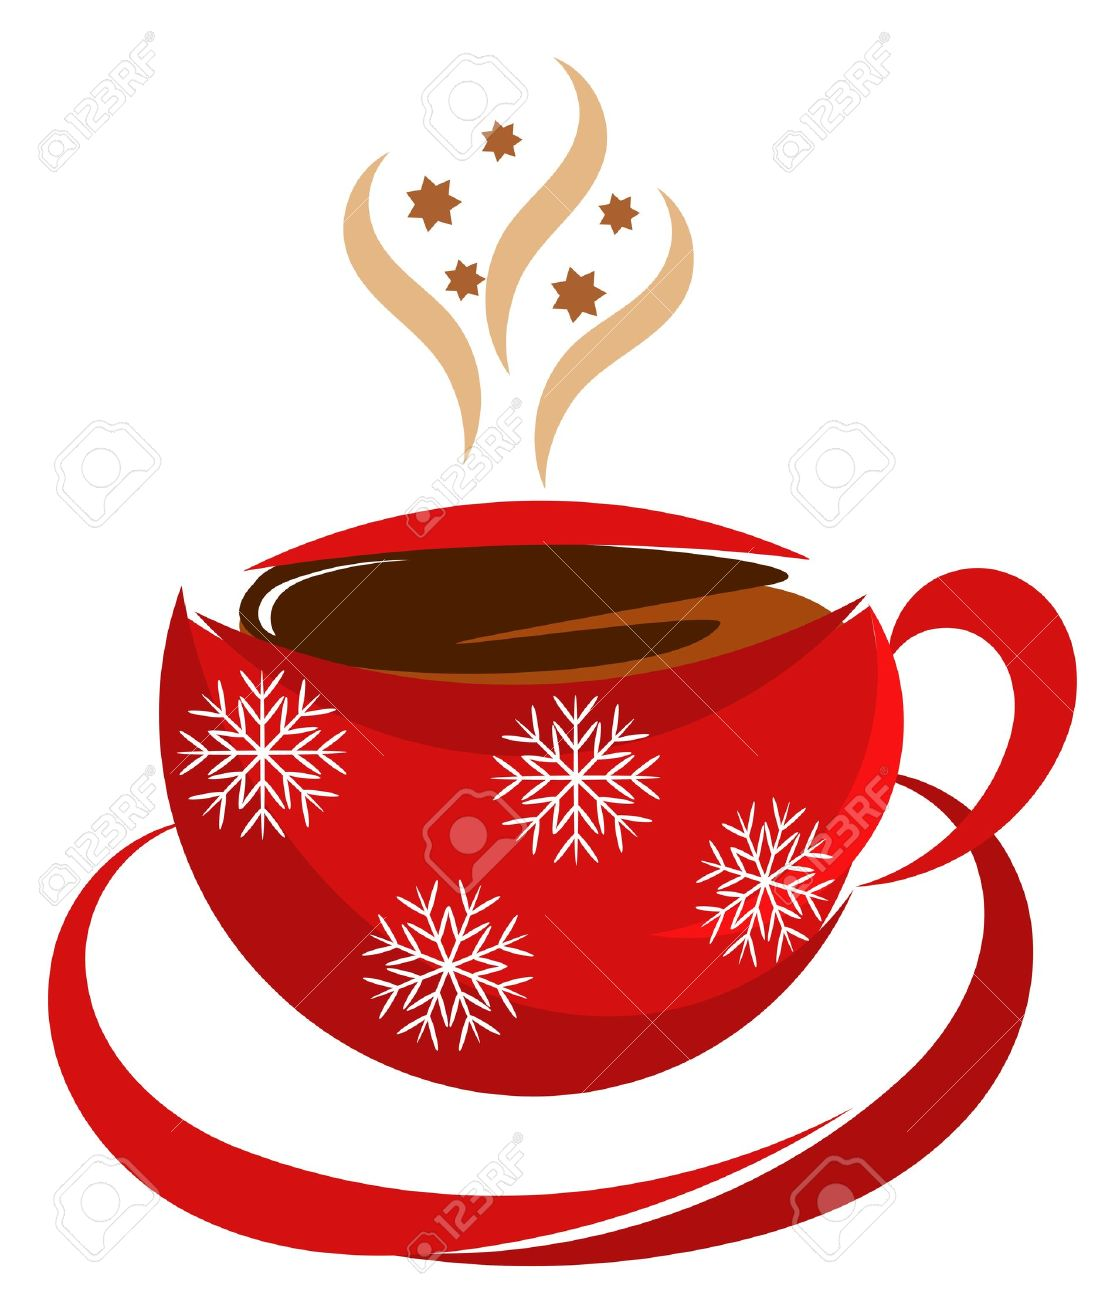 Christmas coffee cup in red color.